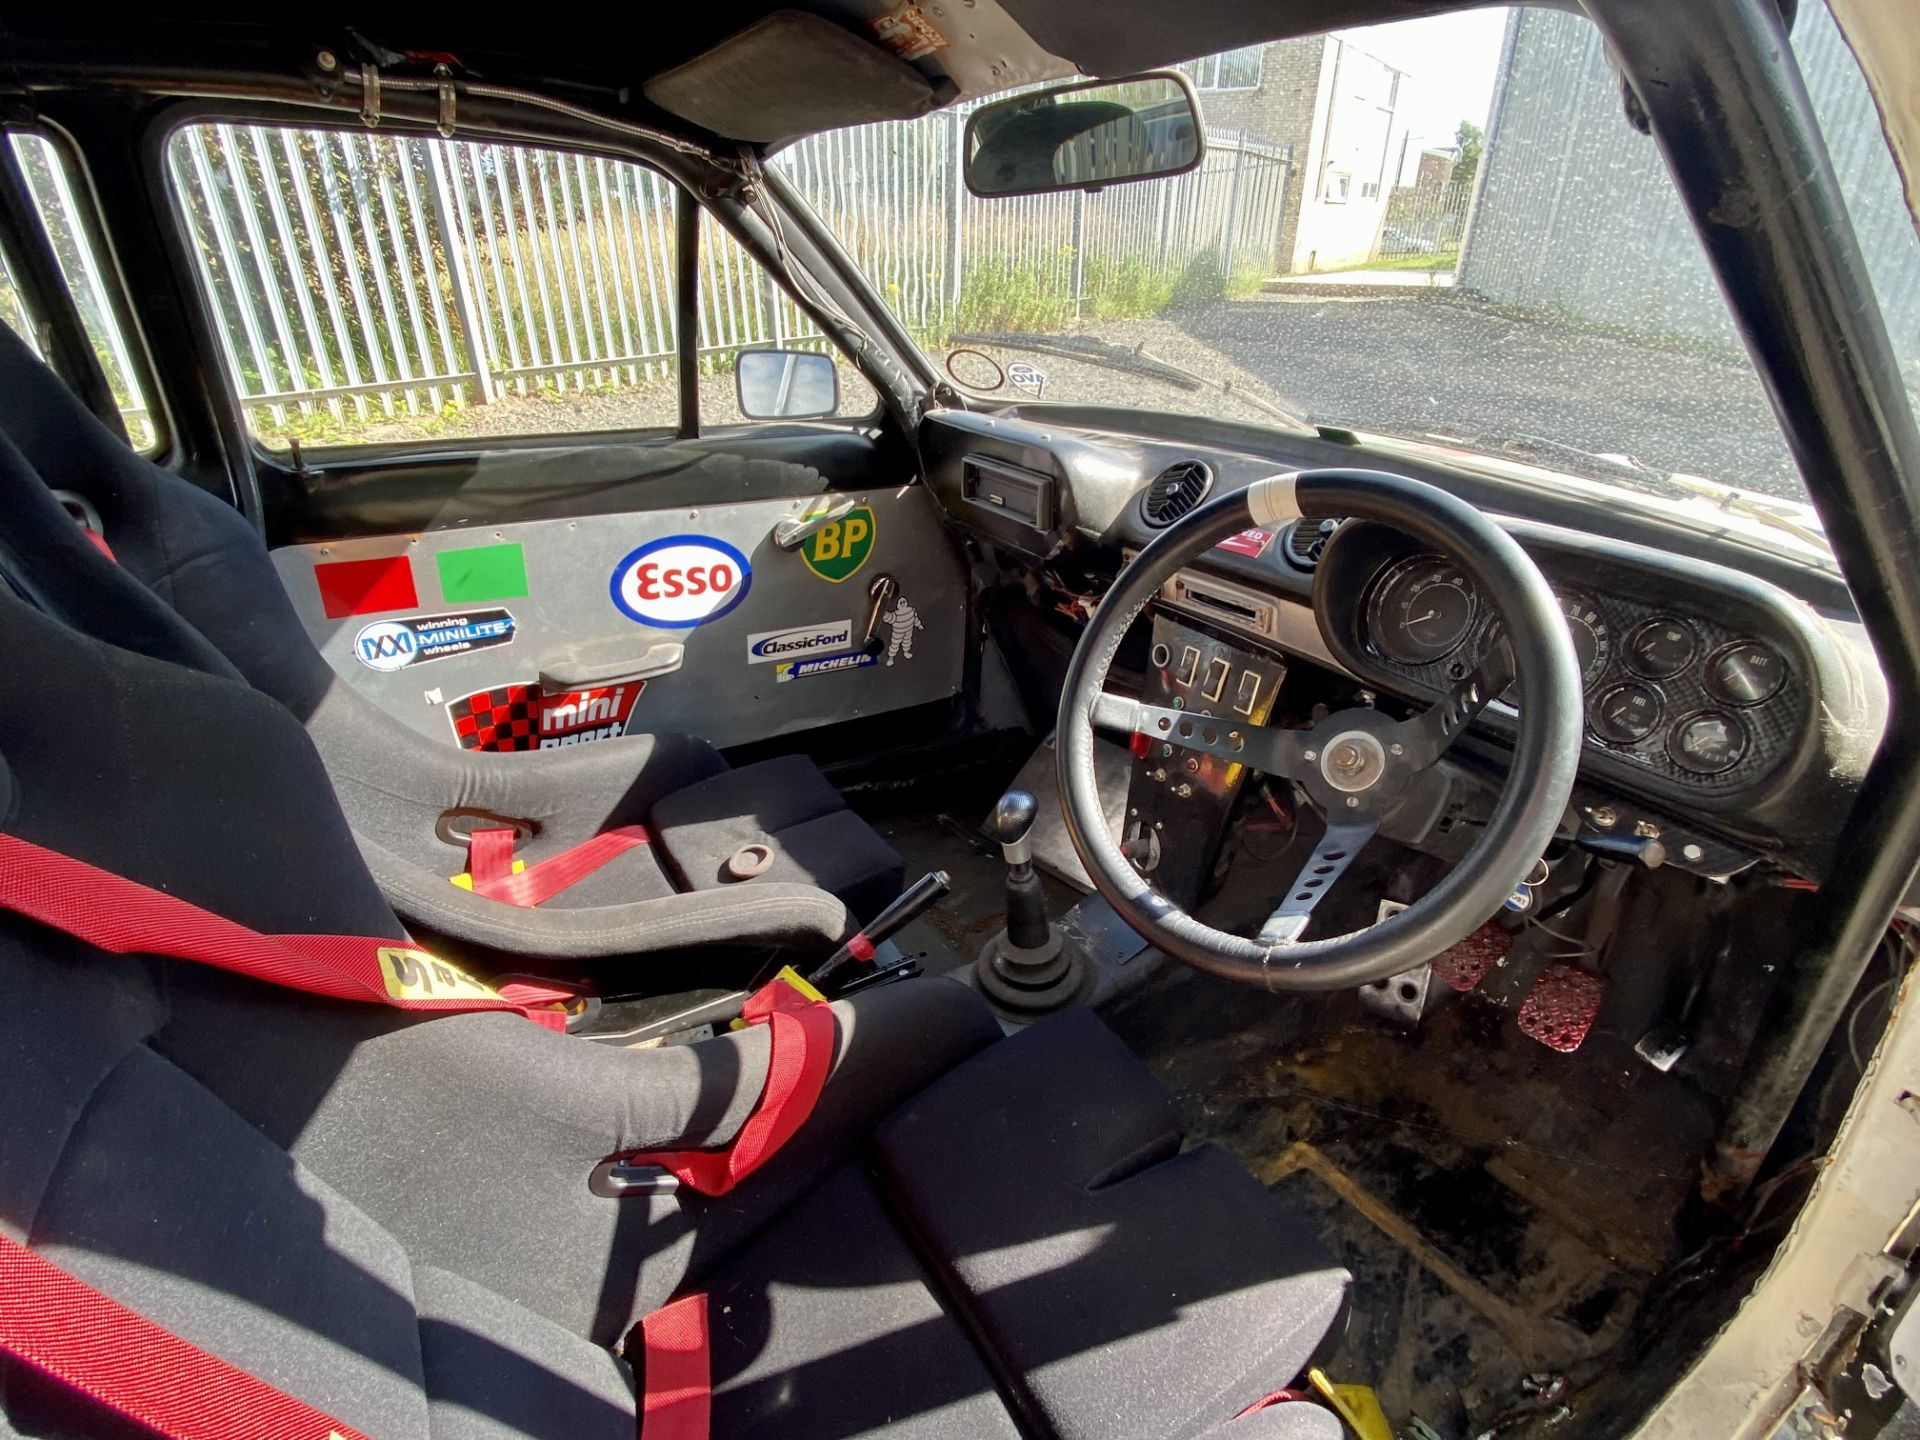 Ford Escort Mexico - Image 34 of 51